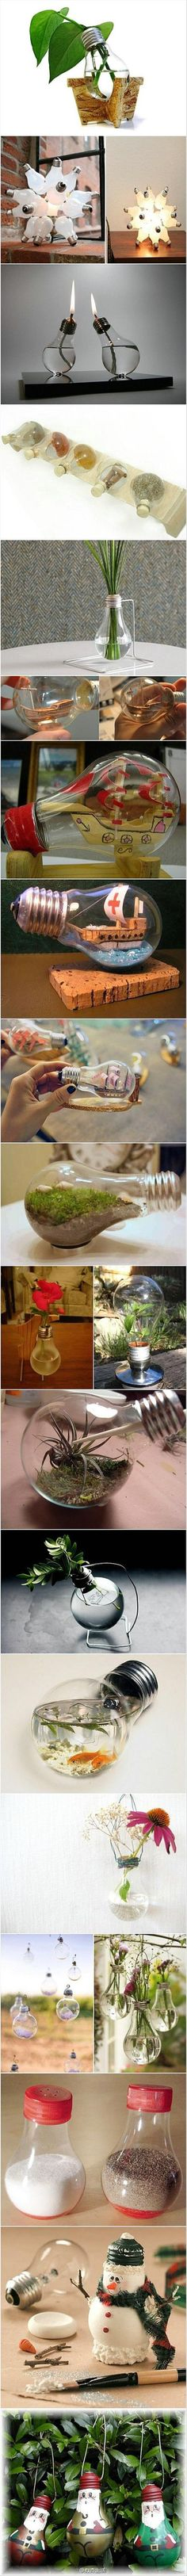 Simple do it yourself craft ideas - Gallery